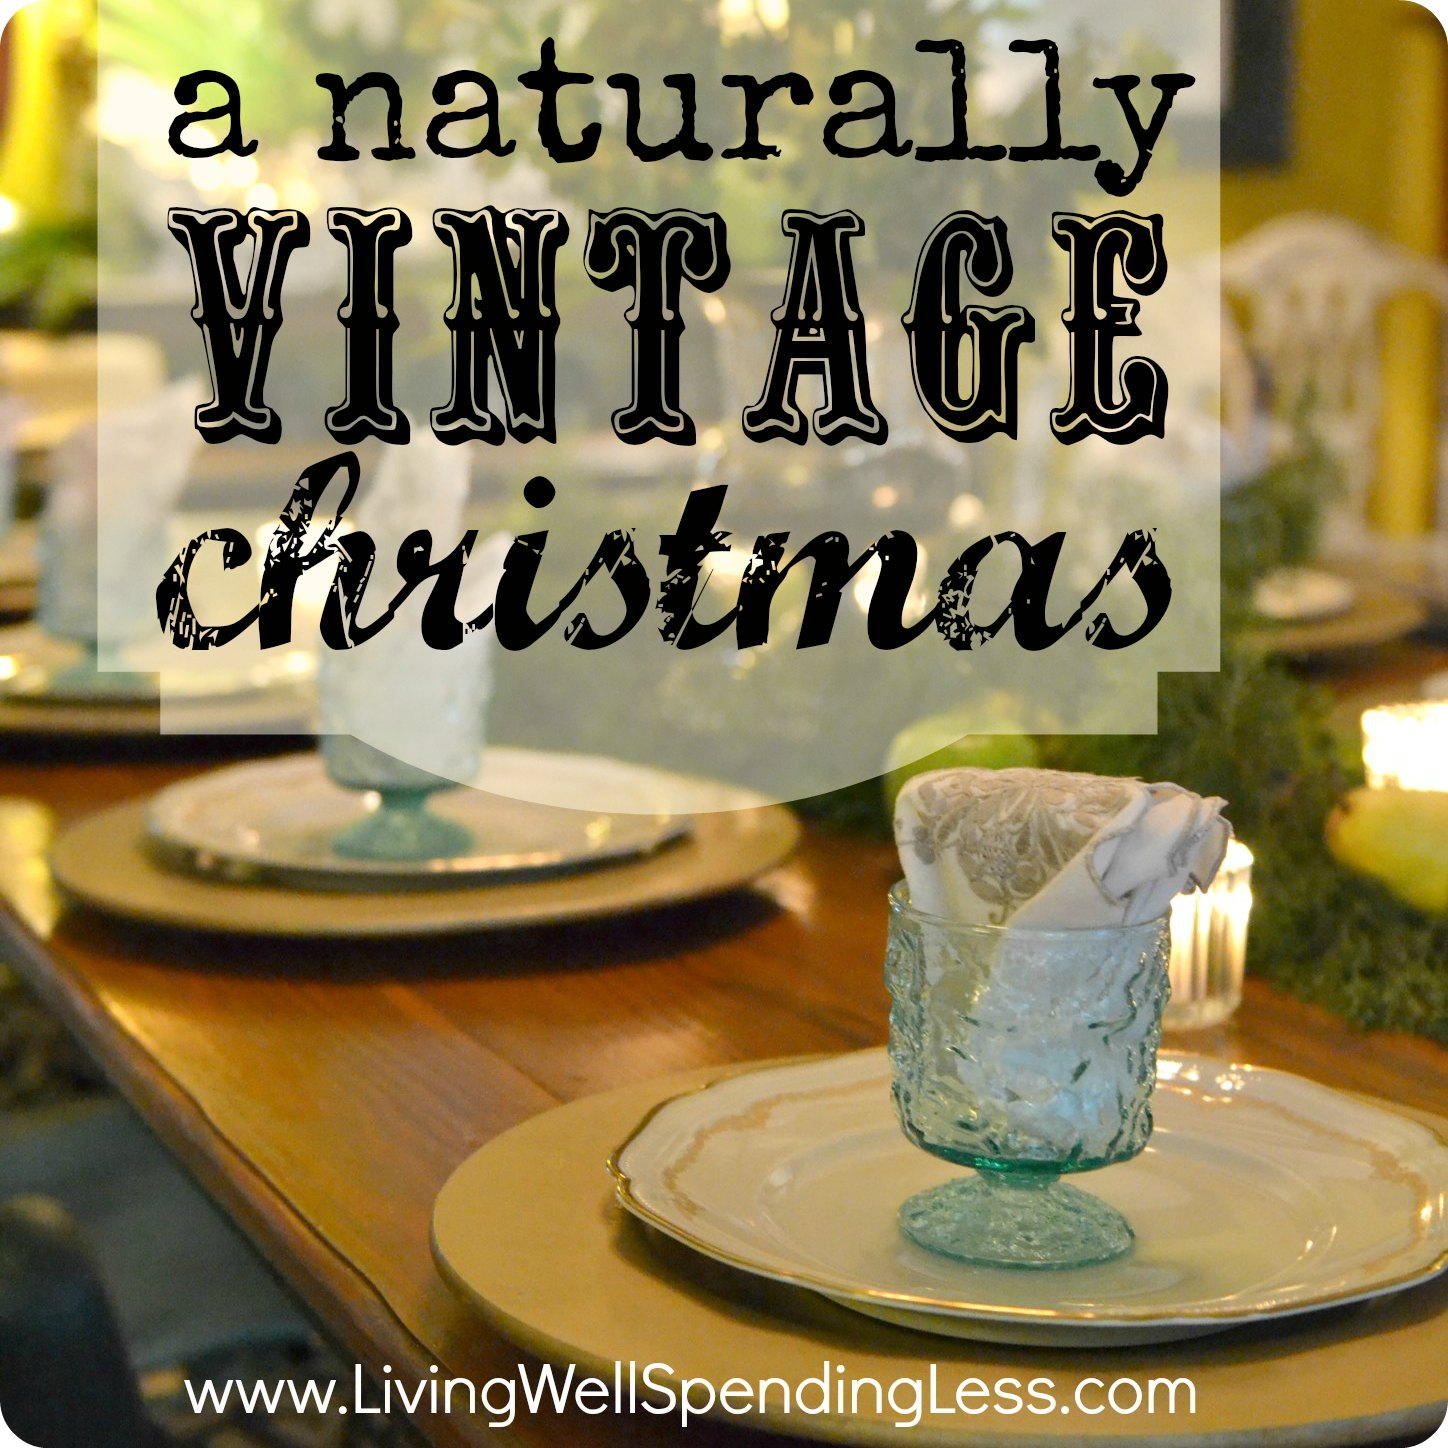 Christmas Decorating Blogs a naturally vintage christmas - living well spending less®